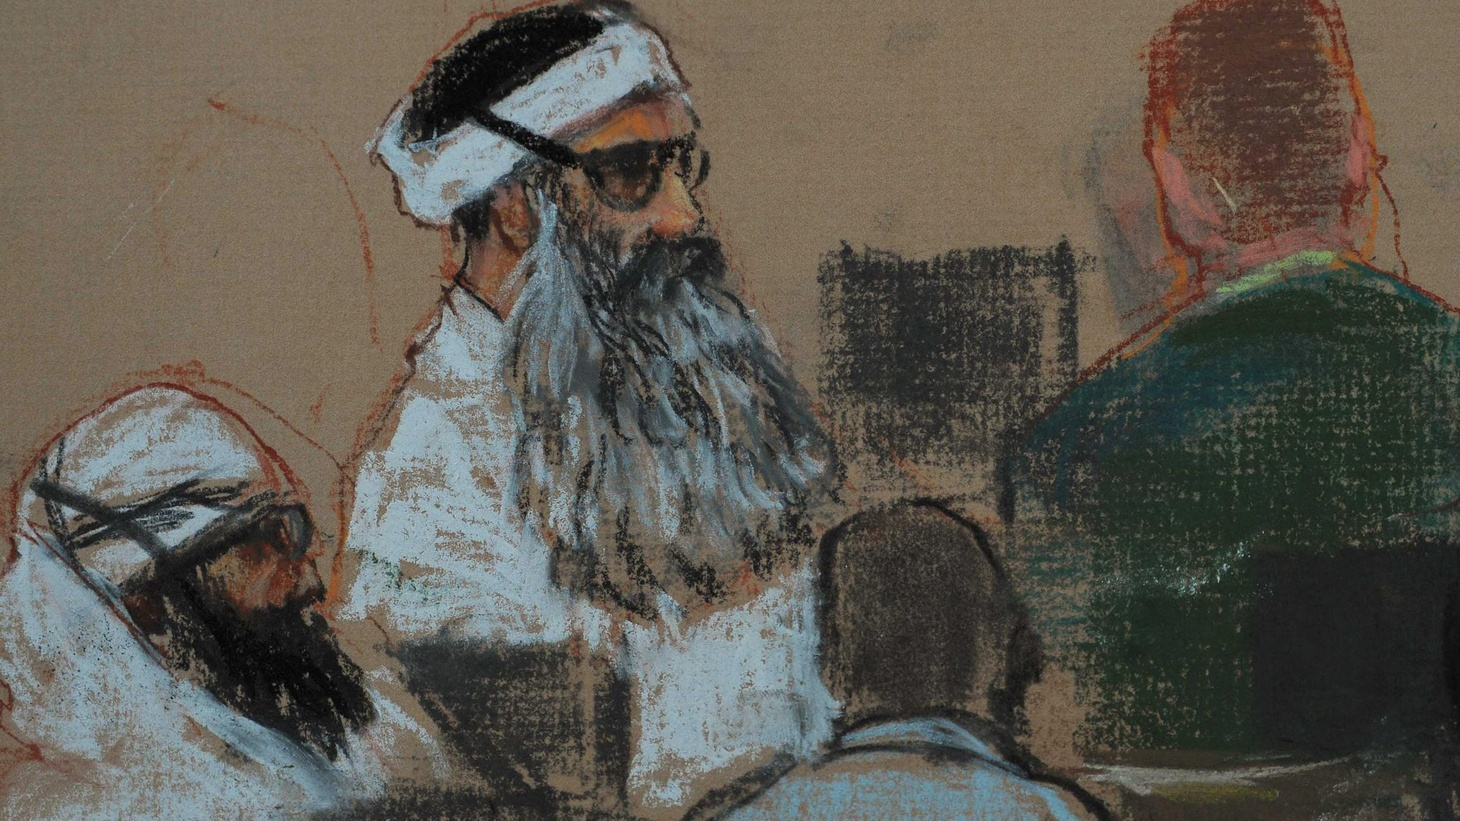 Should terrorist suspects be tried in civilian courts or military tribunals? Should Justice Department lawyers be judged for the clients they represented in the past? Those questions are roiling political Washington today. We hear why. Also, Did Israel intentionally try to insult the US? On Reporter's Notebook, the Chief Justice of the United States strikes back at the President.